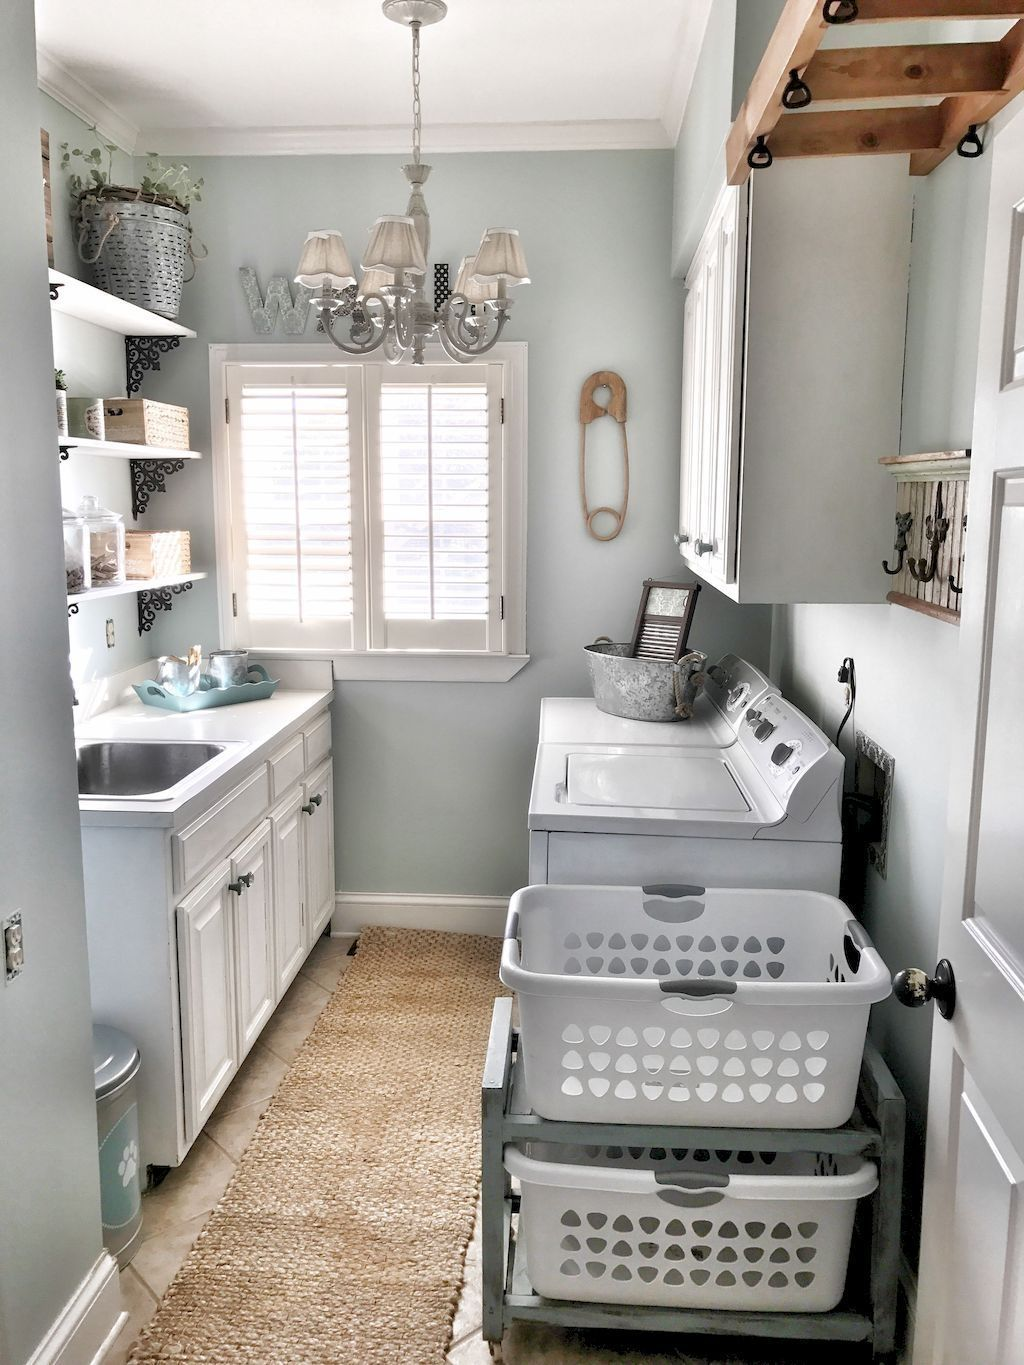 44 Charming Farmhouse Laundry Room Ideas images